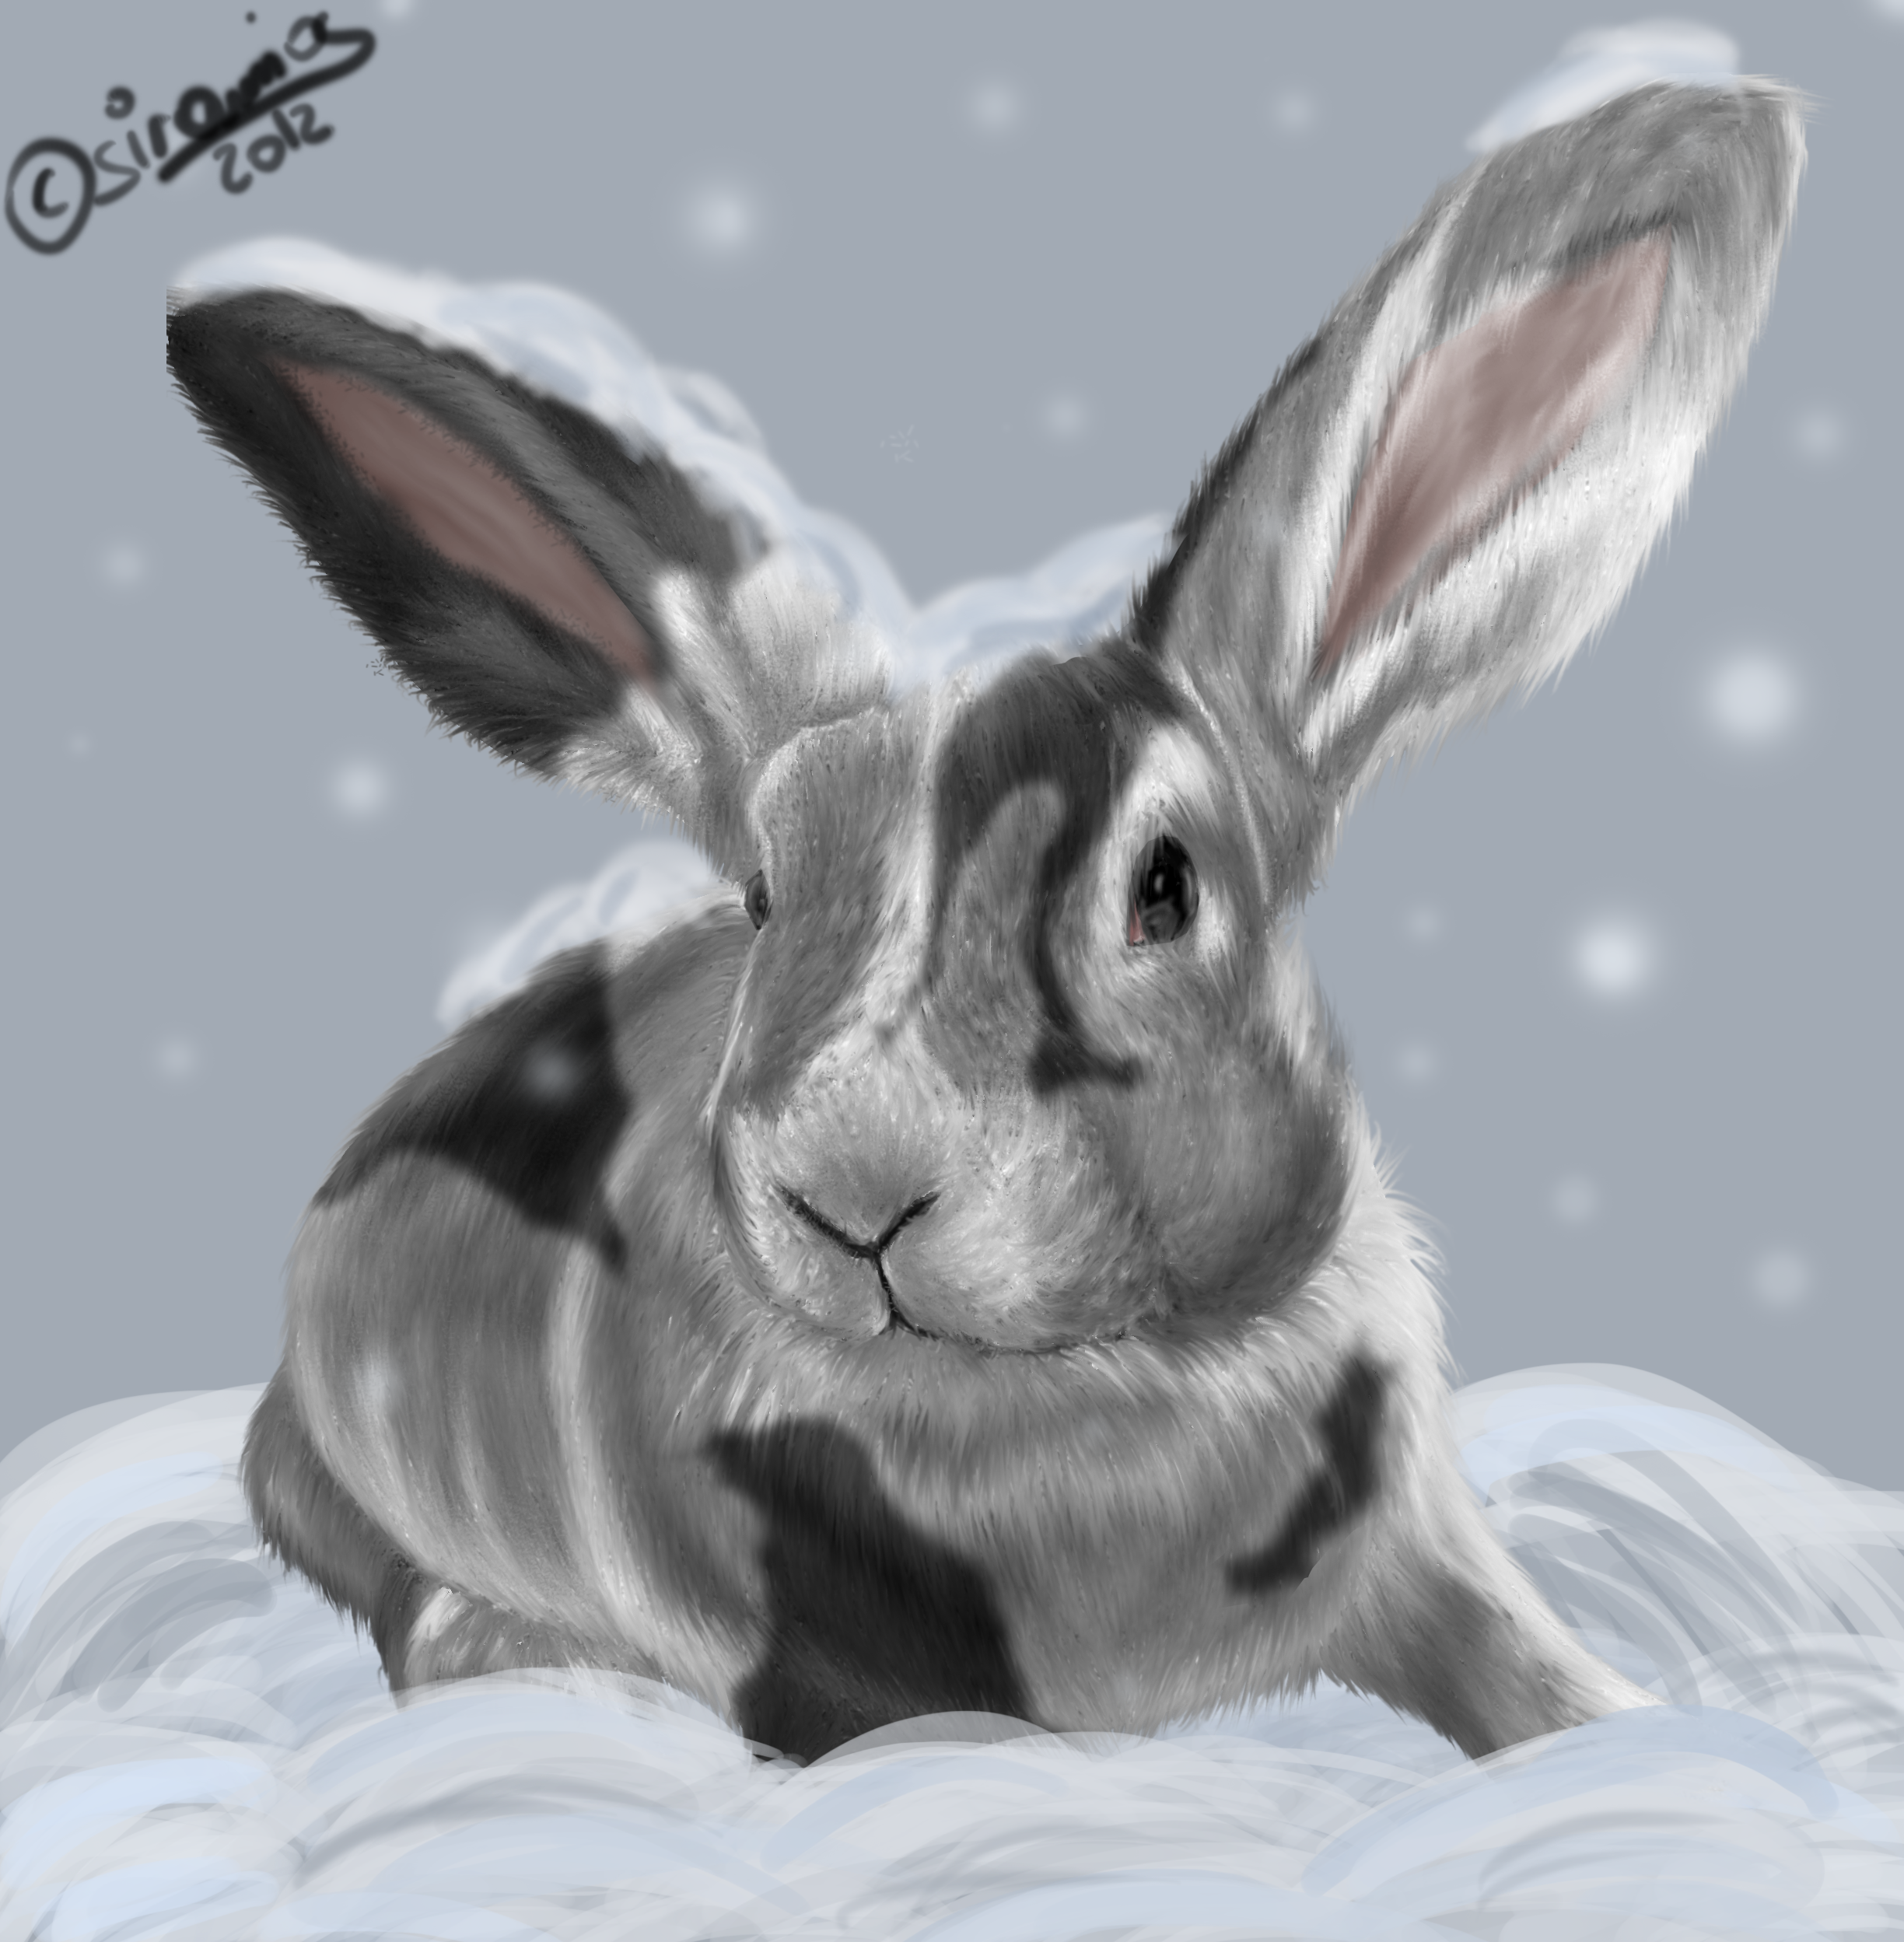 Snow-Rabbit [Christmas Gift] by siramios